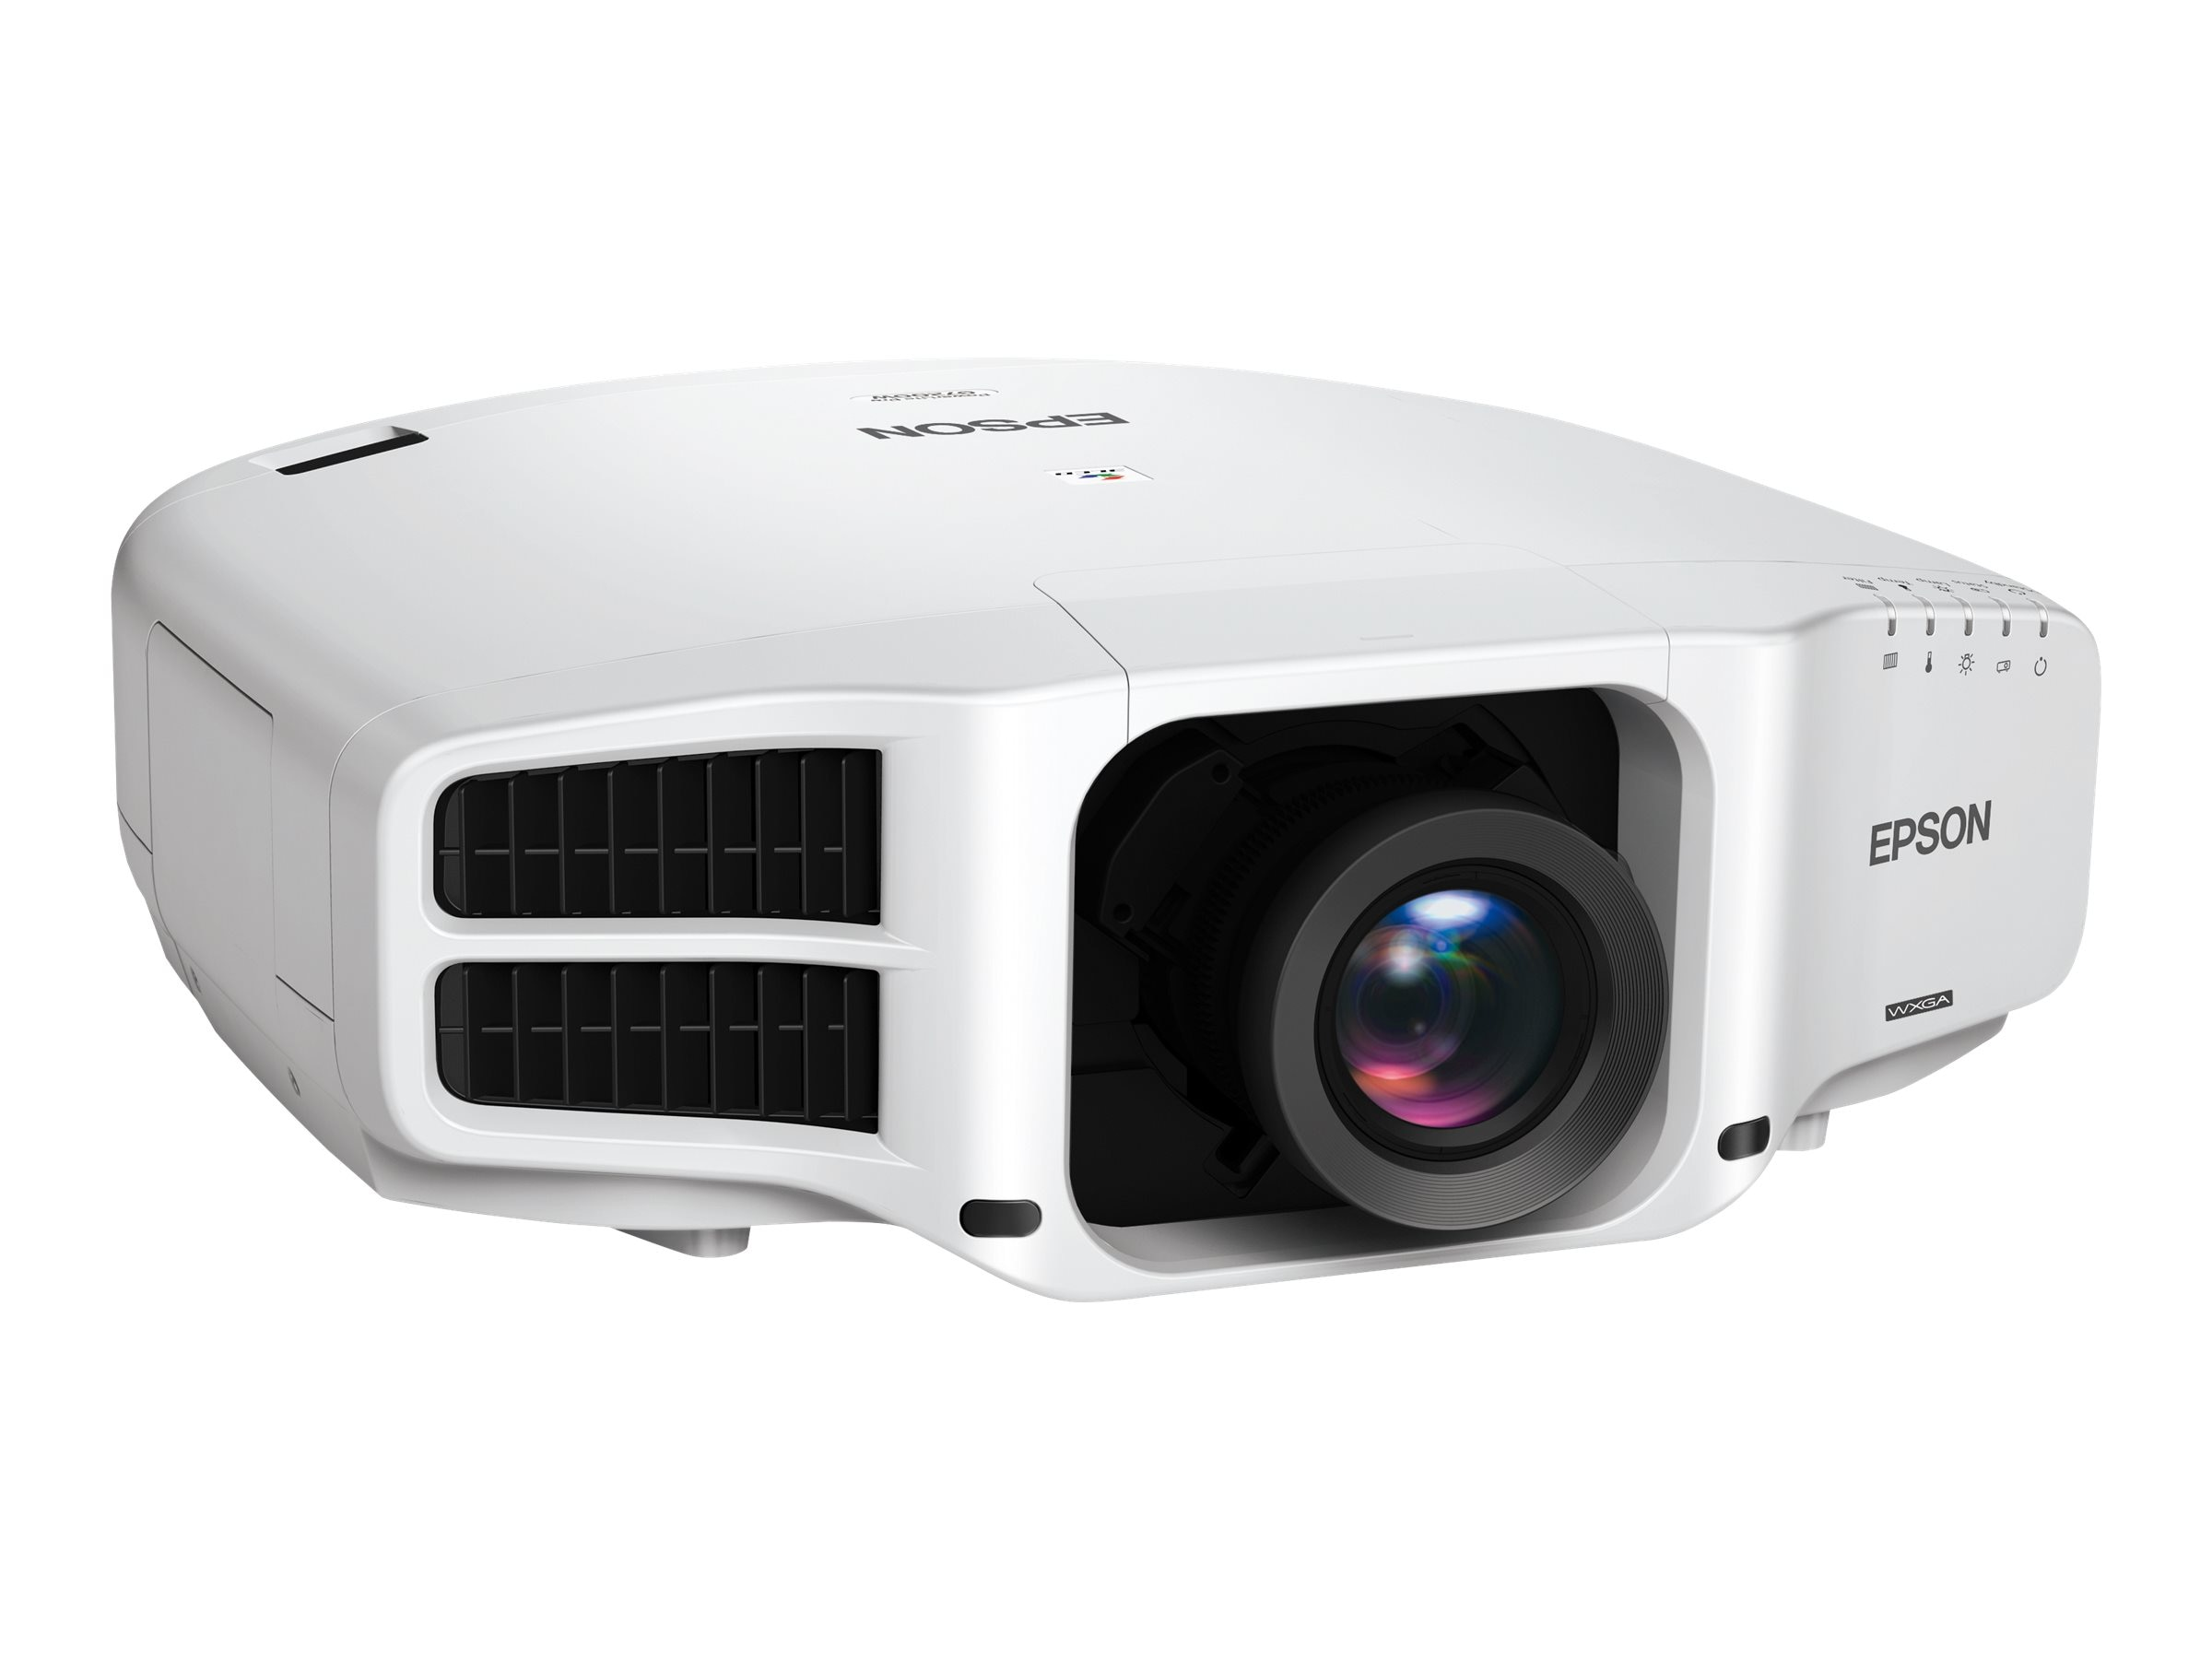 Epson Pro G7200WNL WXGA 3LCD Projector, 7500 Lumens, White